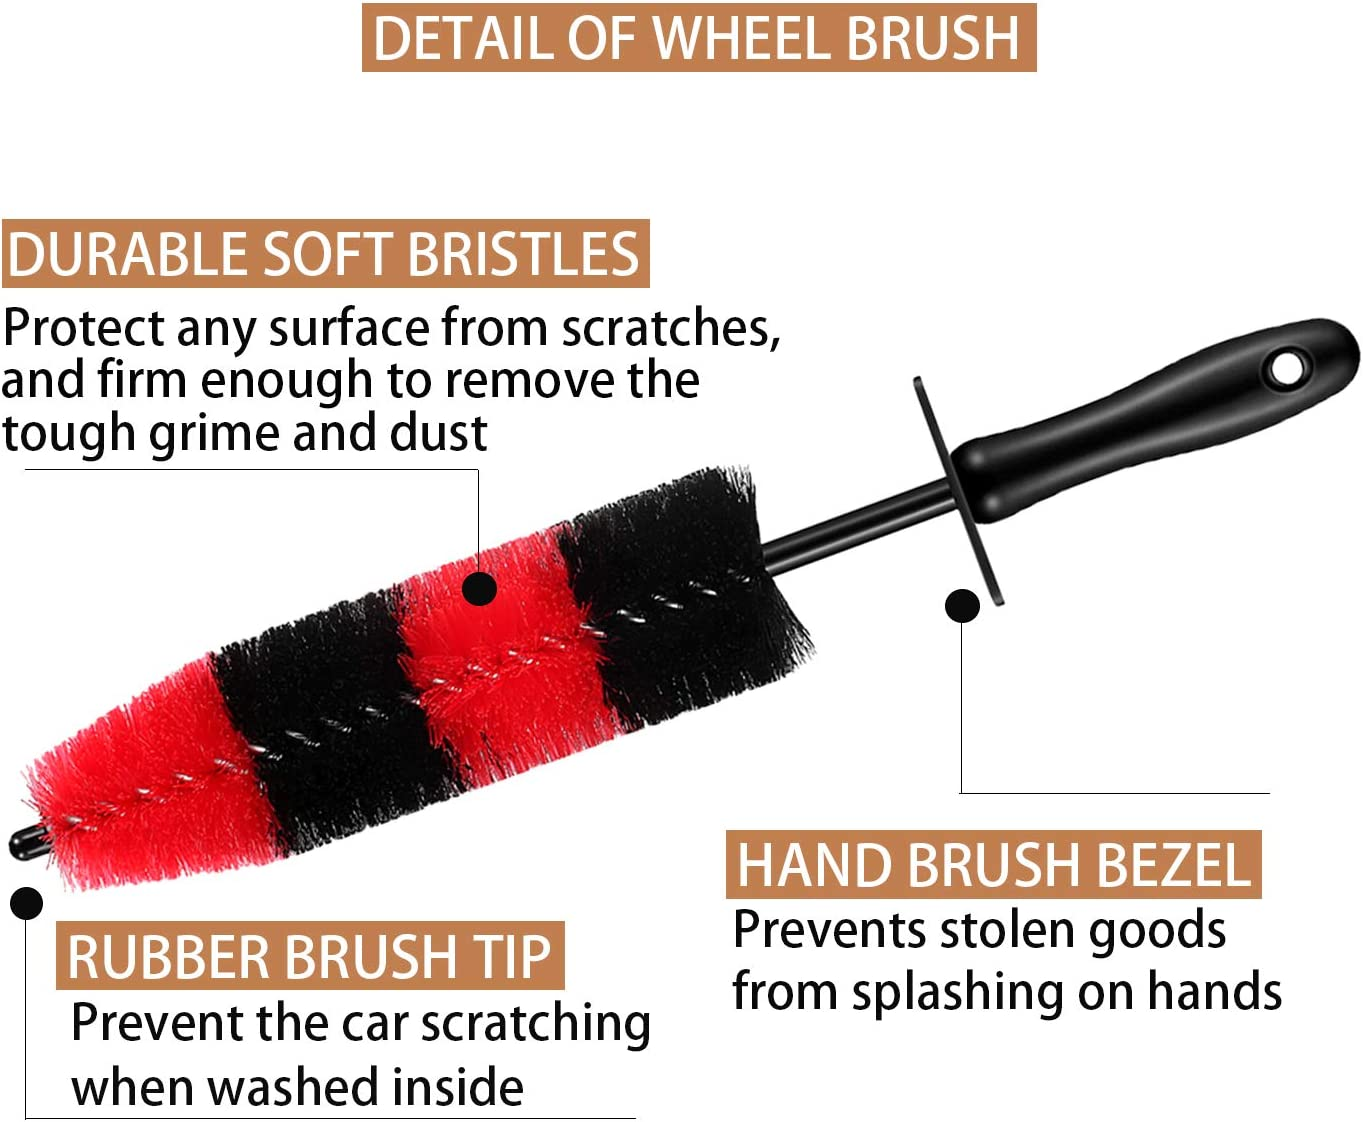 10Pcs Car Wheel /& Tire Detailing Brush Kit,Including 17inch Long Wheel Brush,Short Handle Tire Brush,5pcs Boar Hair Detail Brushes Kit /& 3pcs Wire Brushes for Cleaning Car Wheels /& Interior Exterior